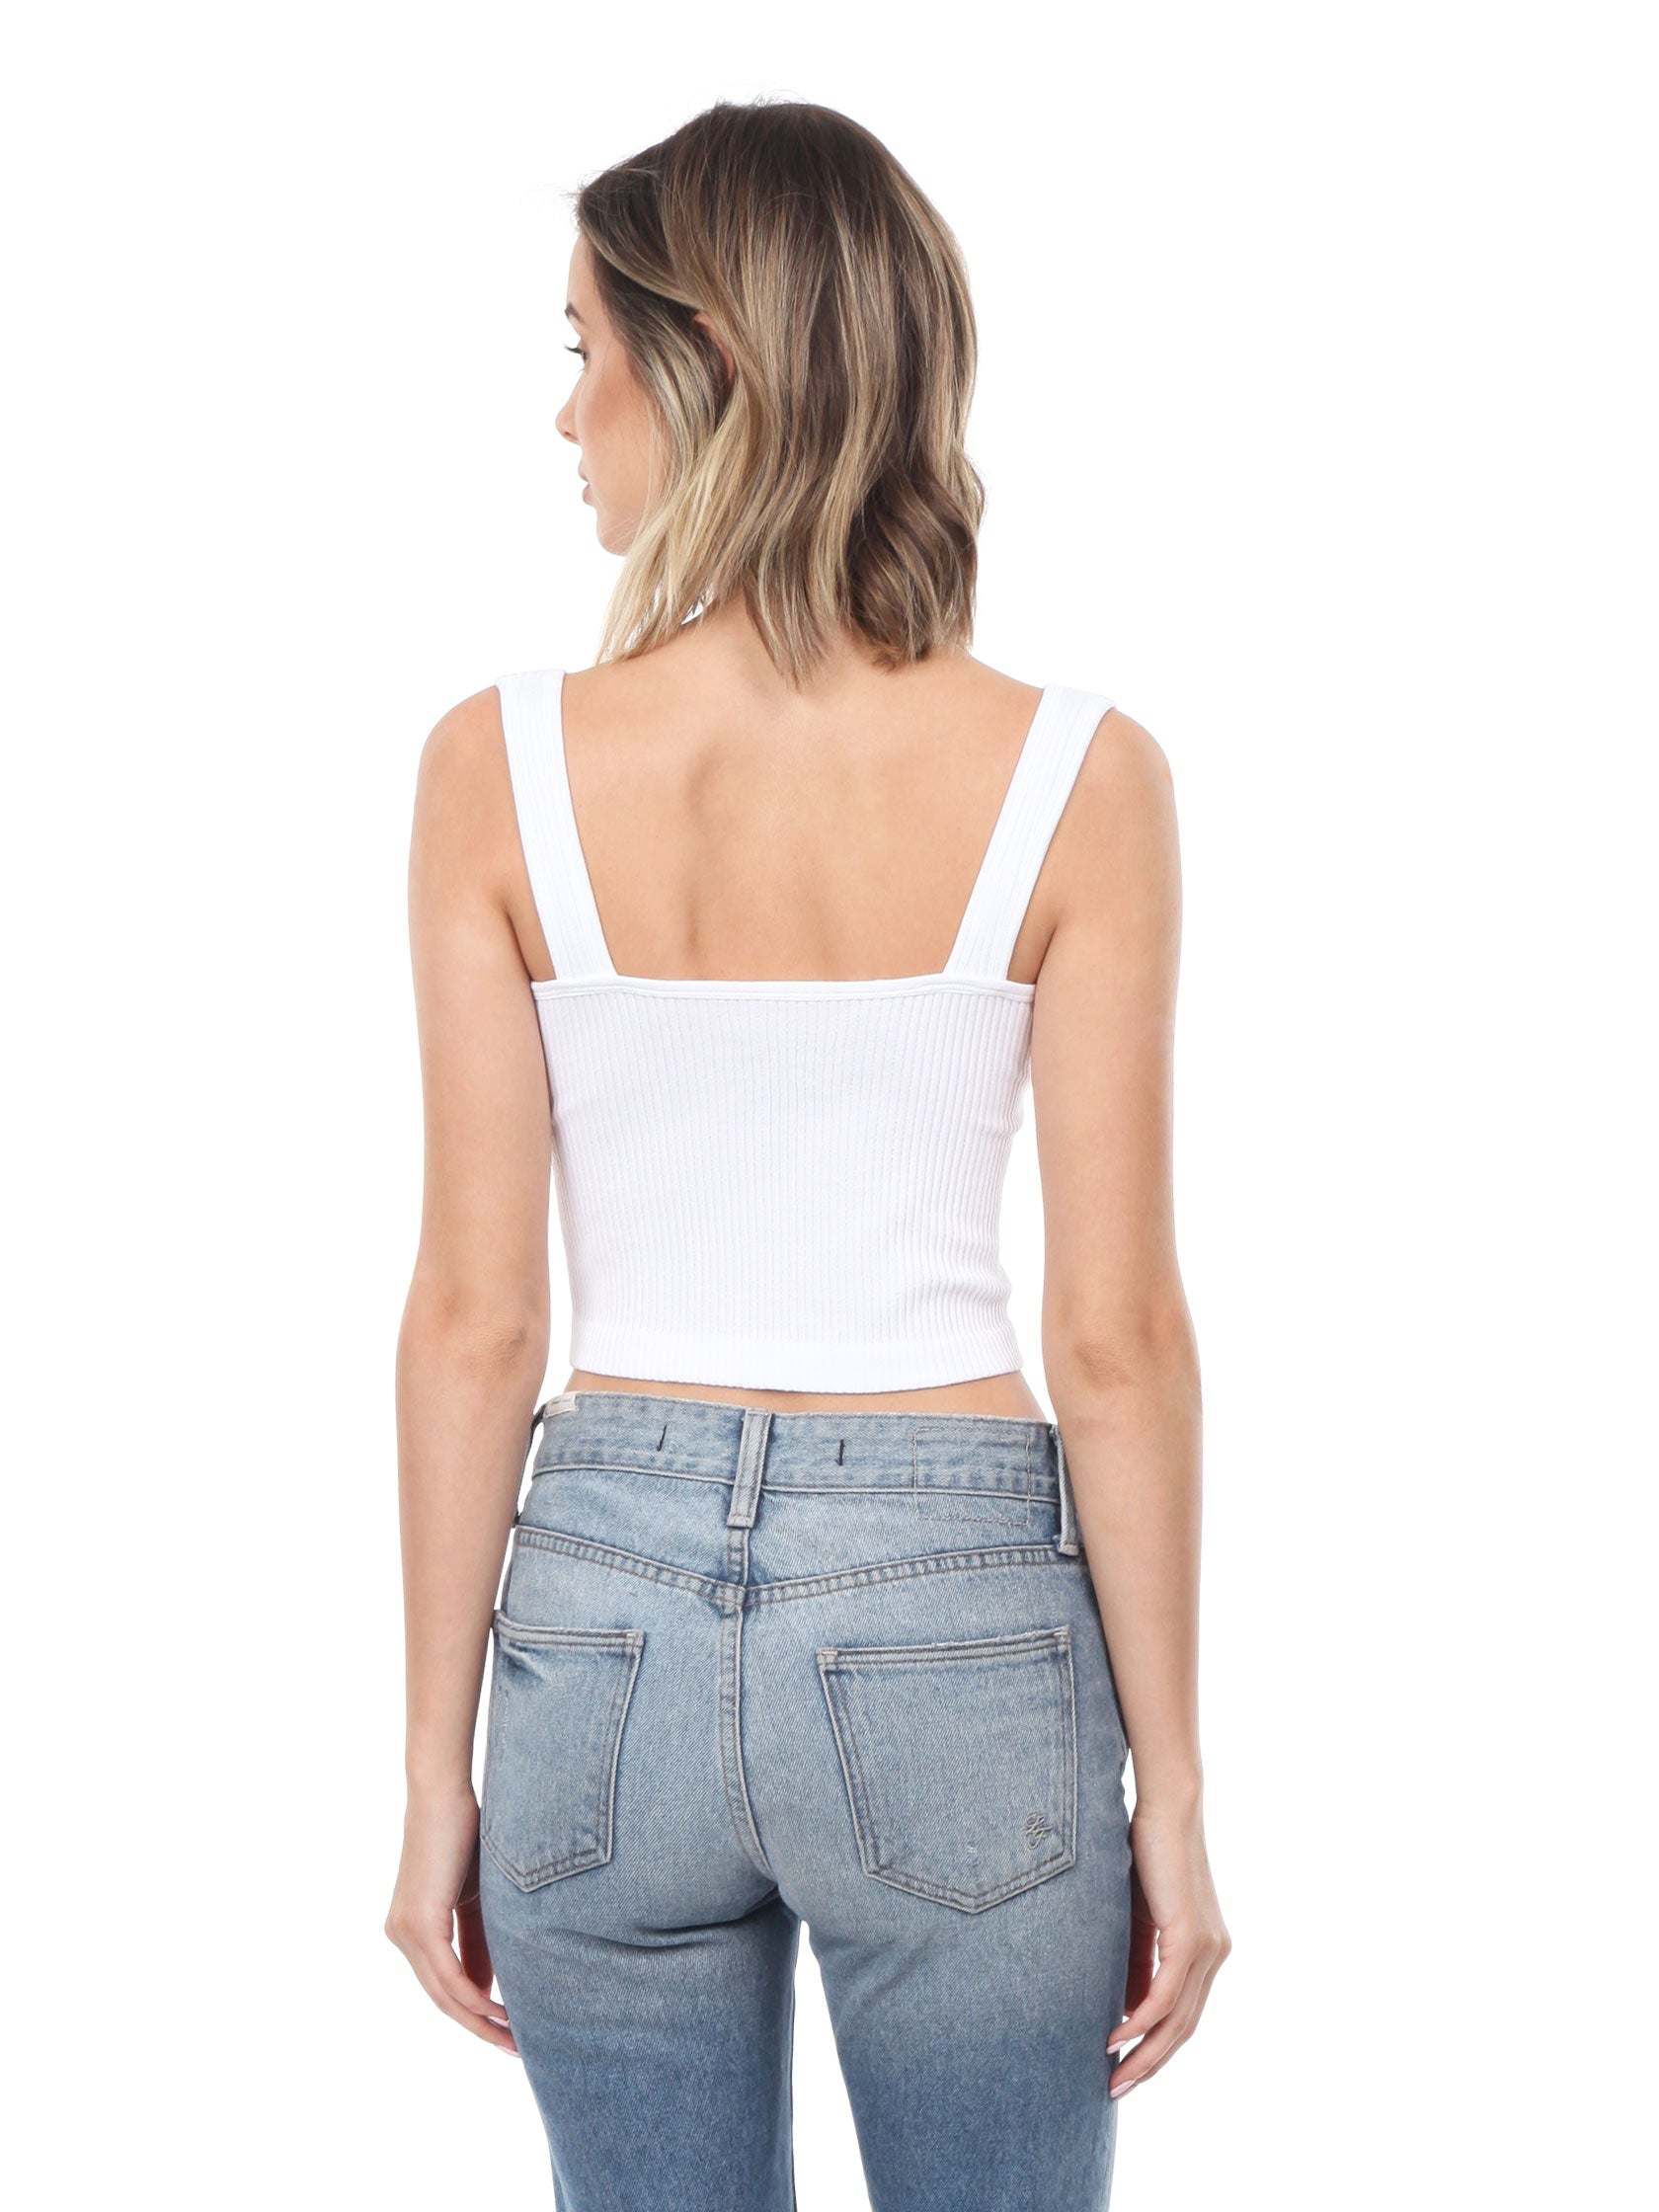 Women outfit in a cami rental from Free People called Ribbed Cropped Tank Top